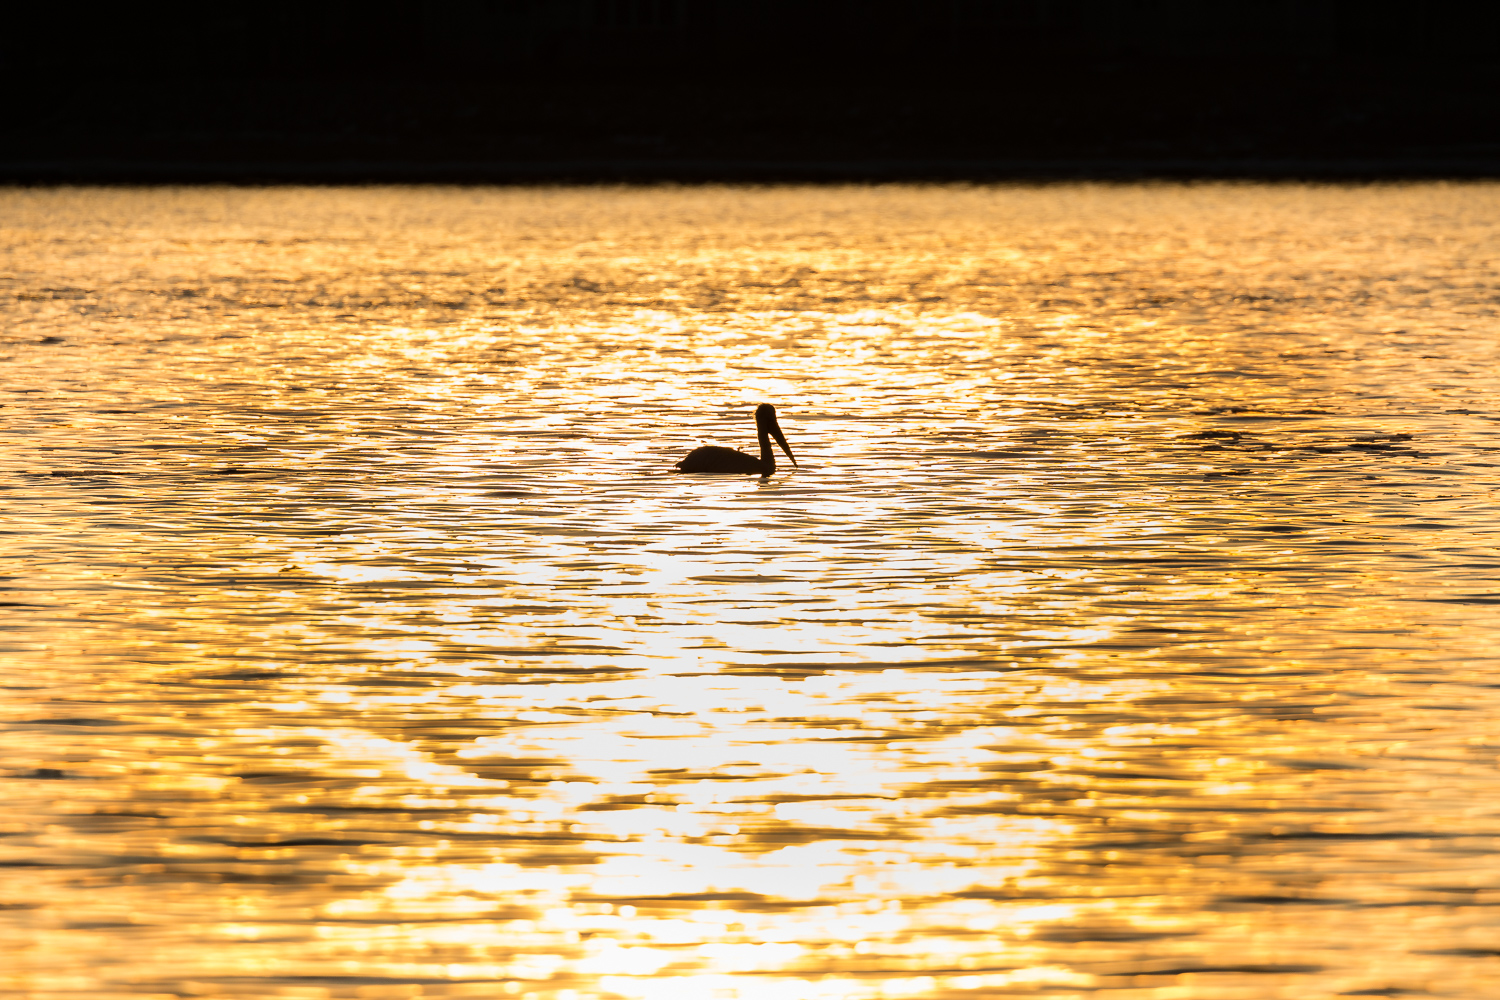 """Morning Gold"", a Pelican on the Mississippi River, Lock & Dam 14 near Le Claire, Iowa."